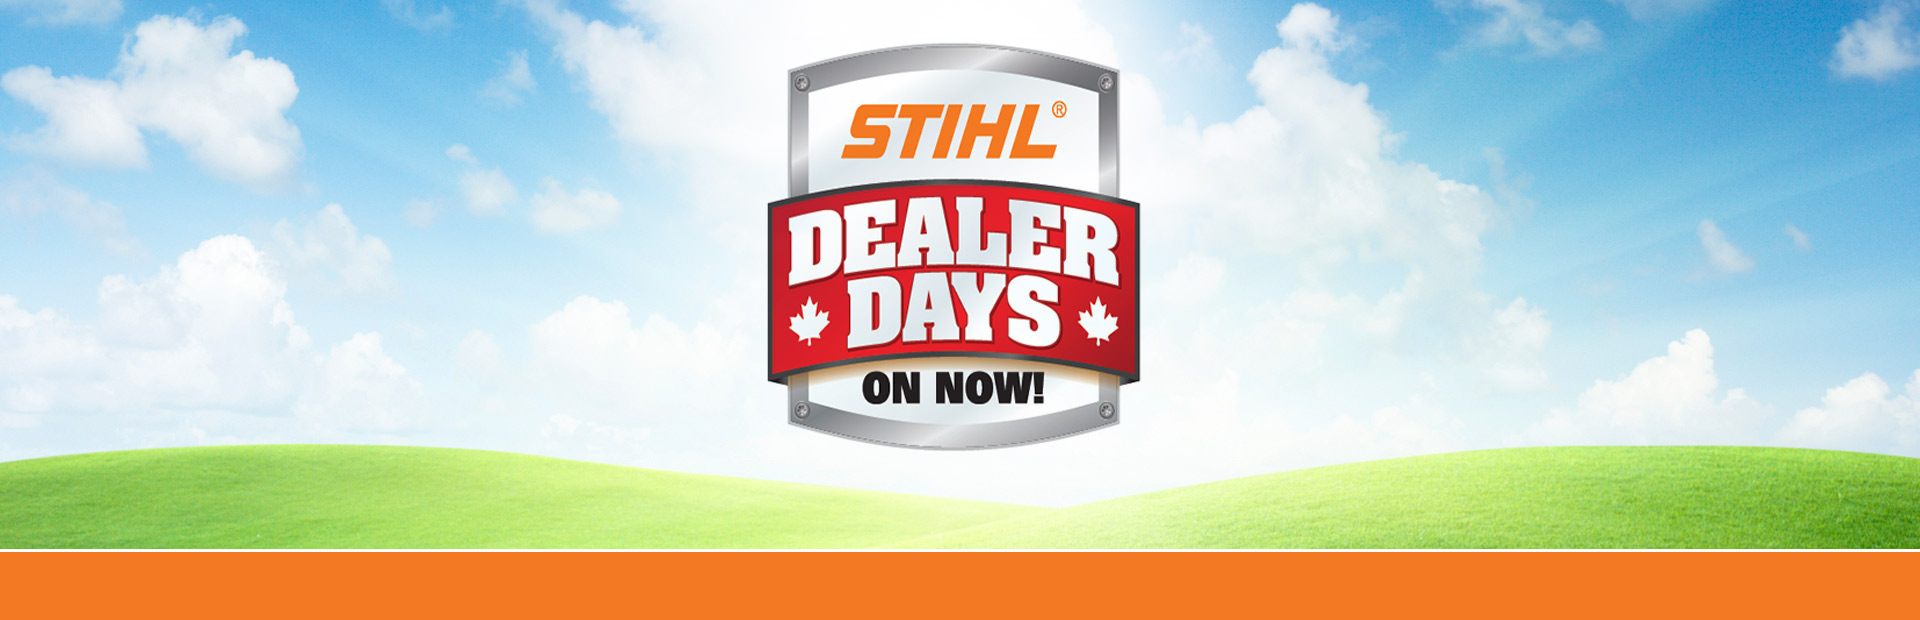 STIHL: STIHL Dealer Days